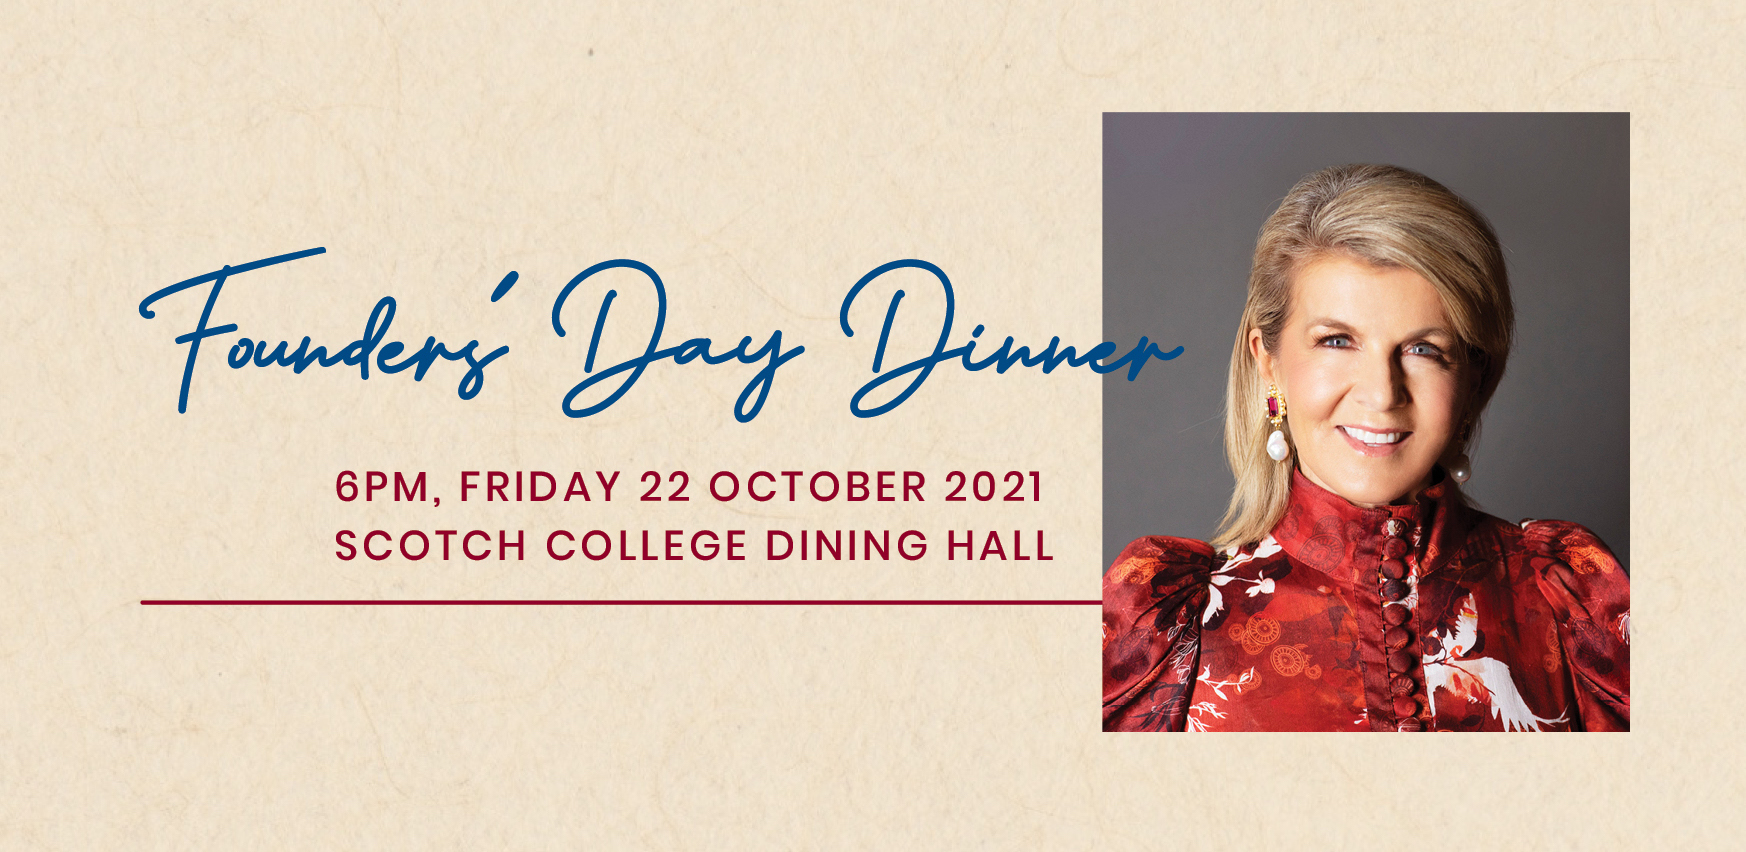 Old Scotch Collegians Founders' Day Dinner